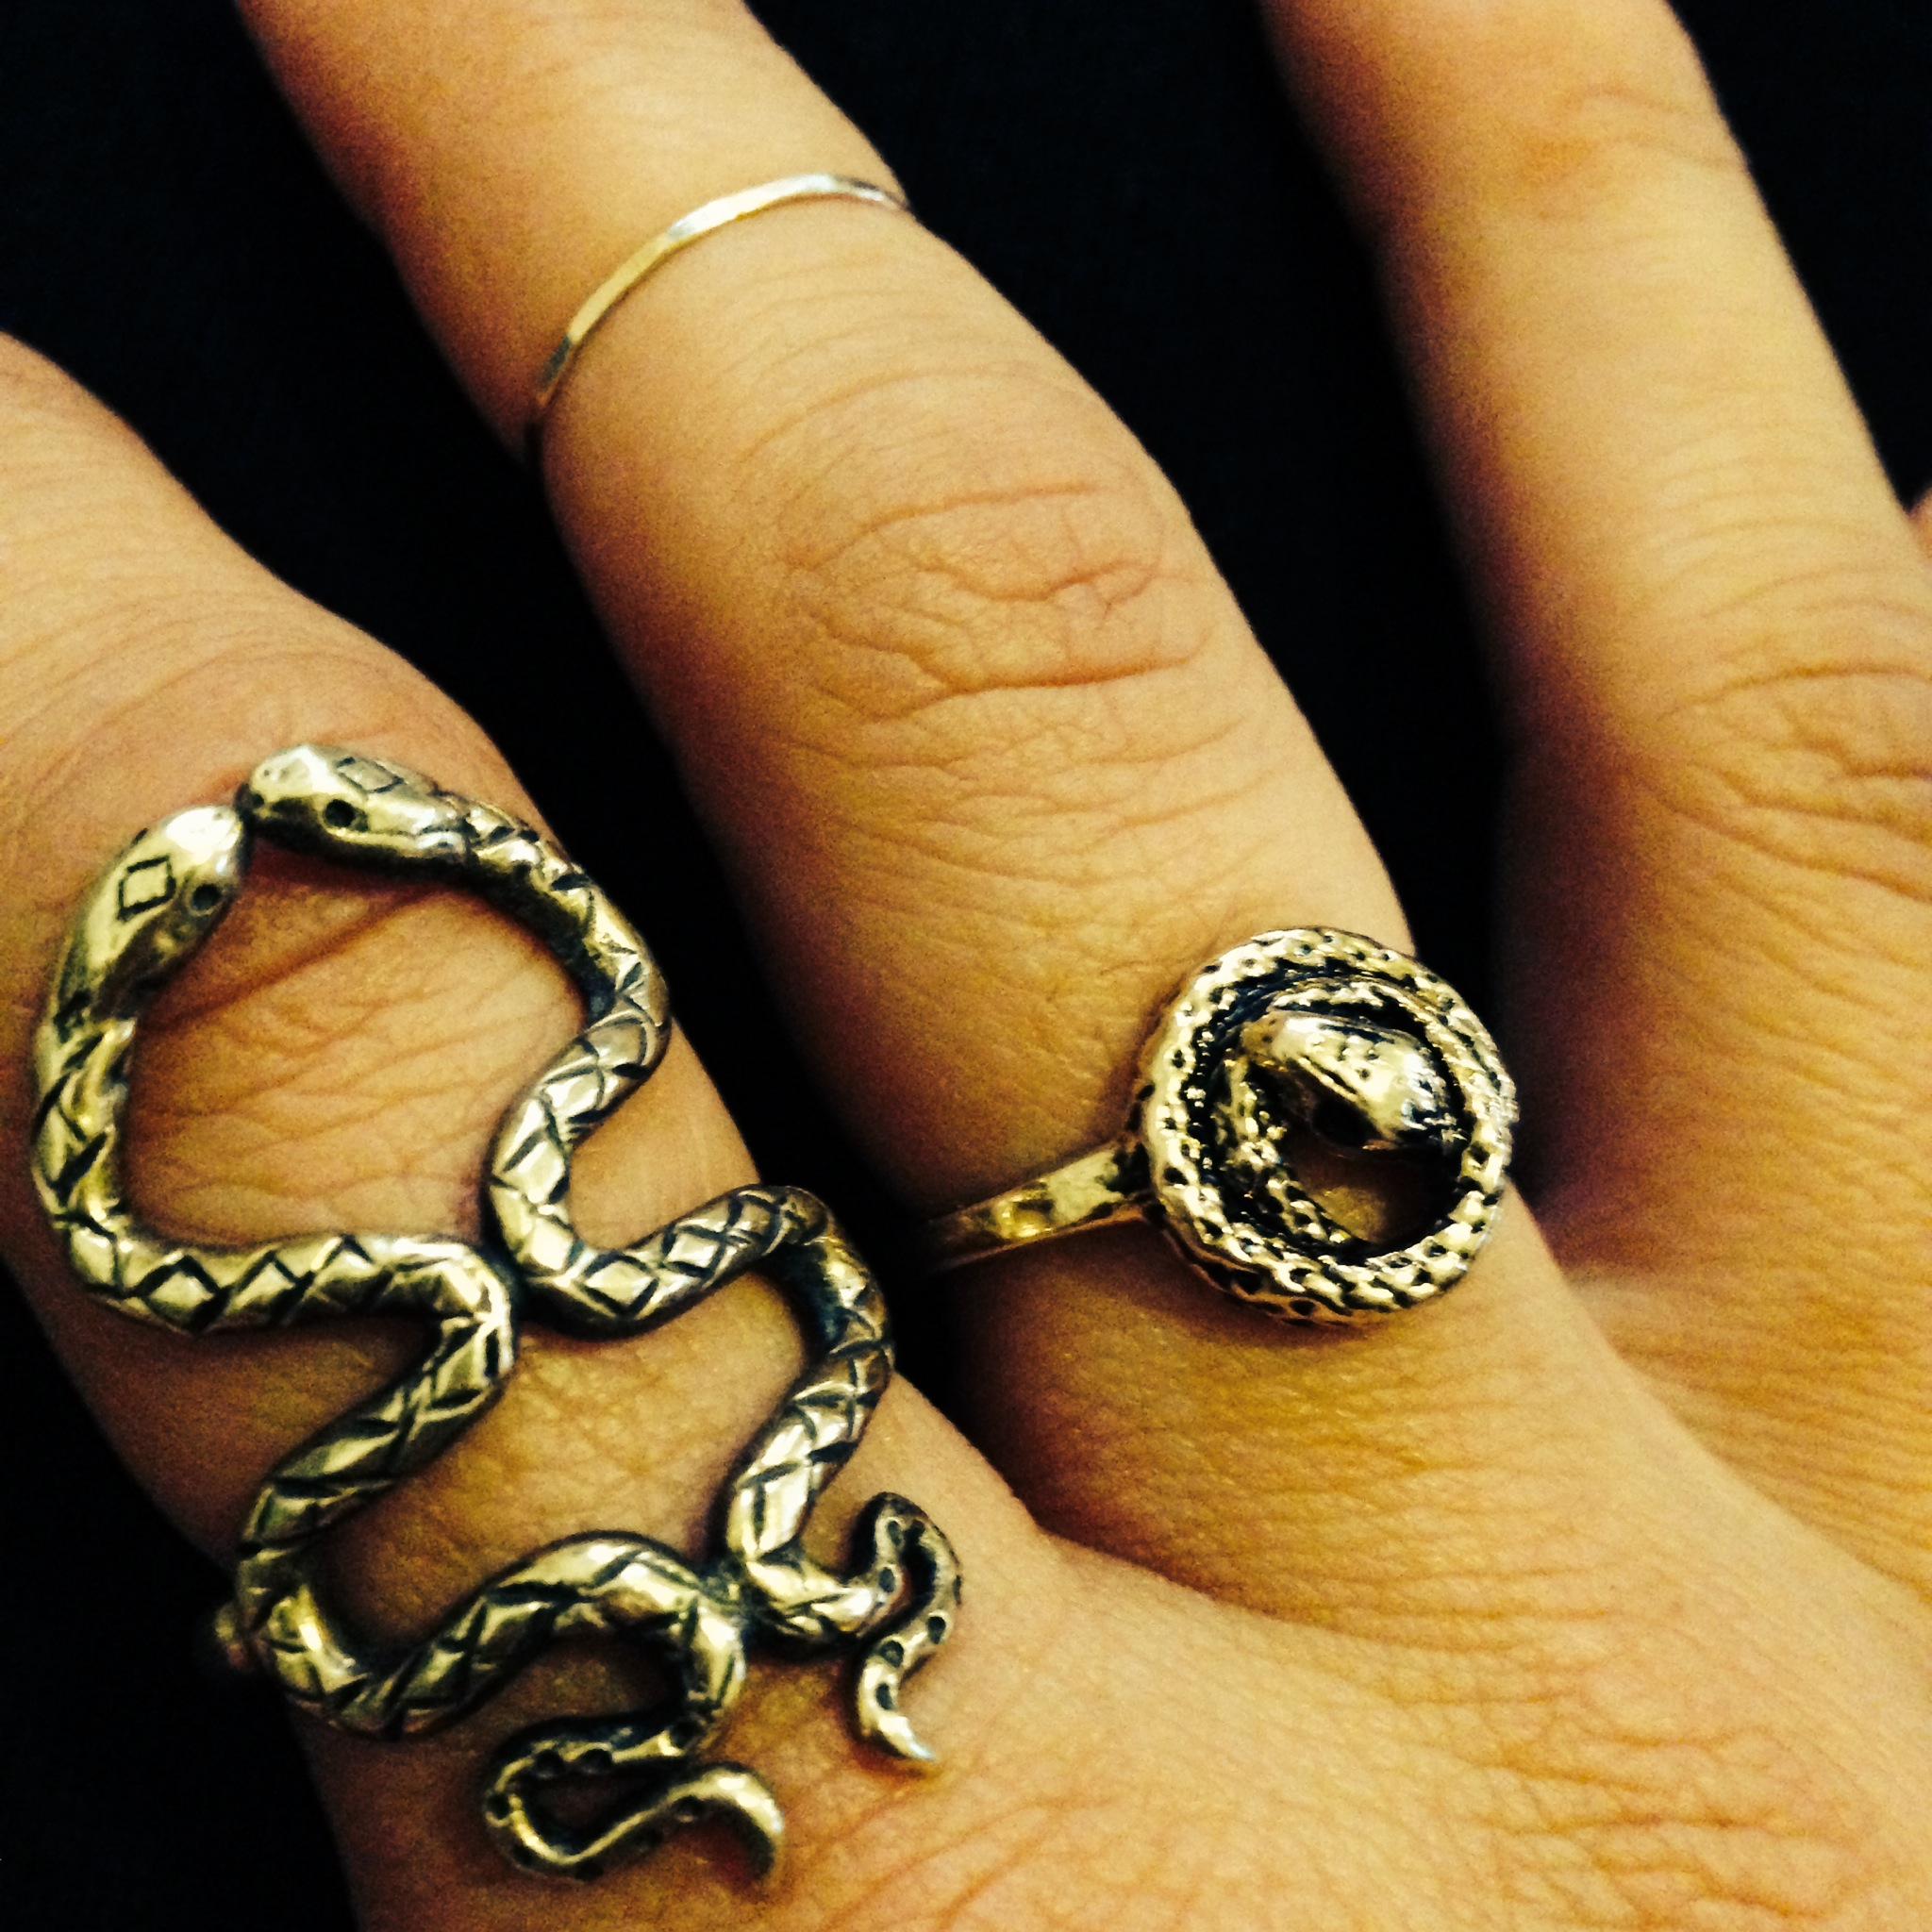 serpent photos rings maize blue ring best